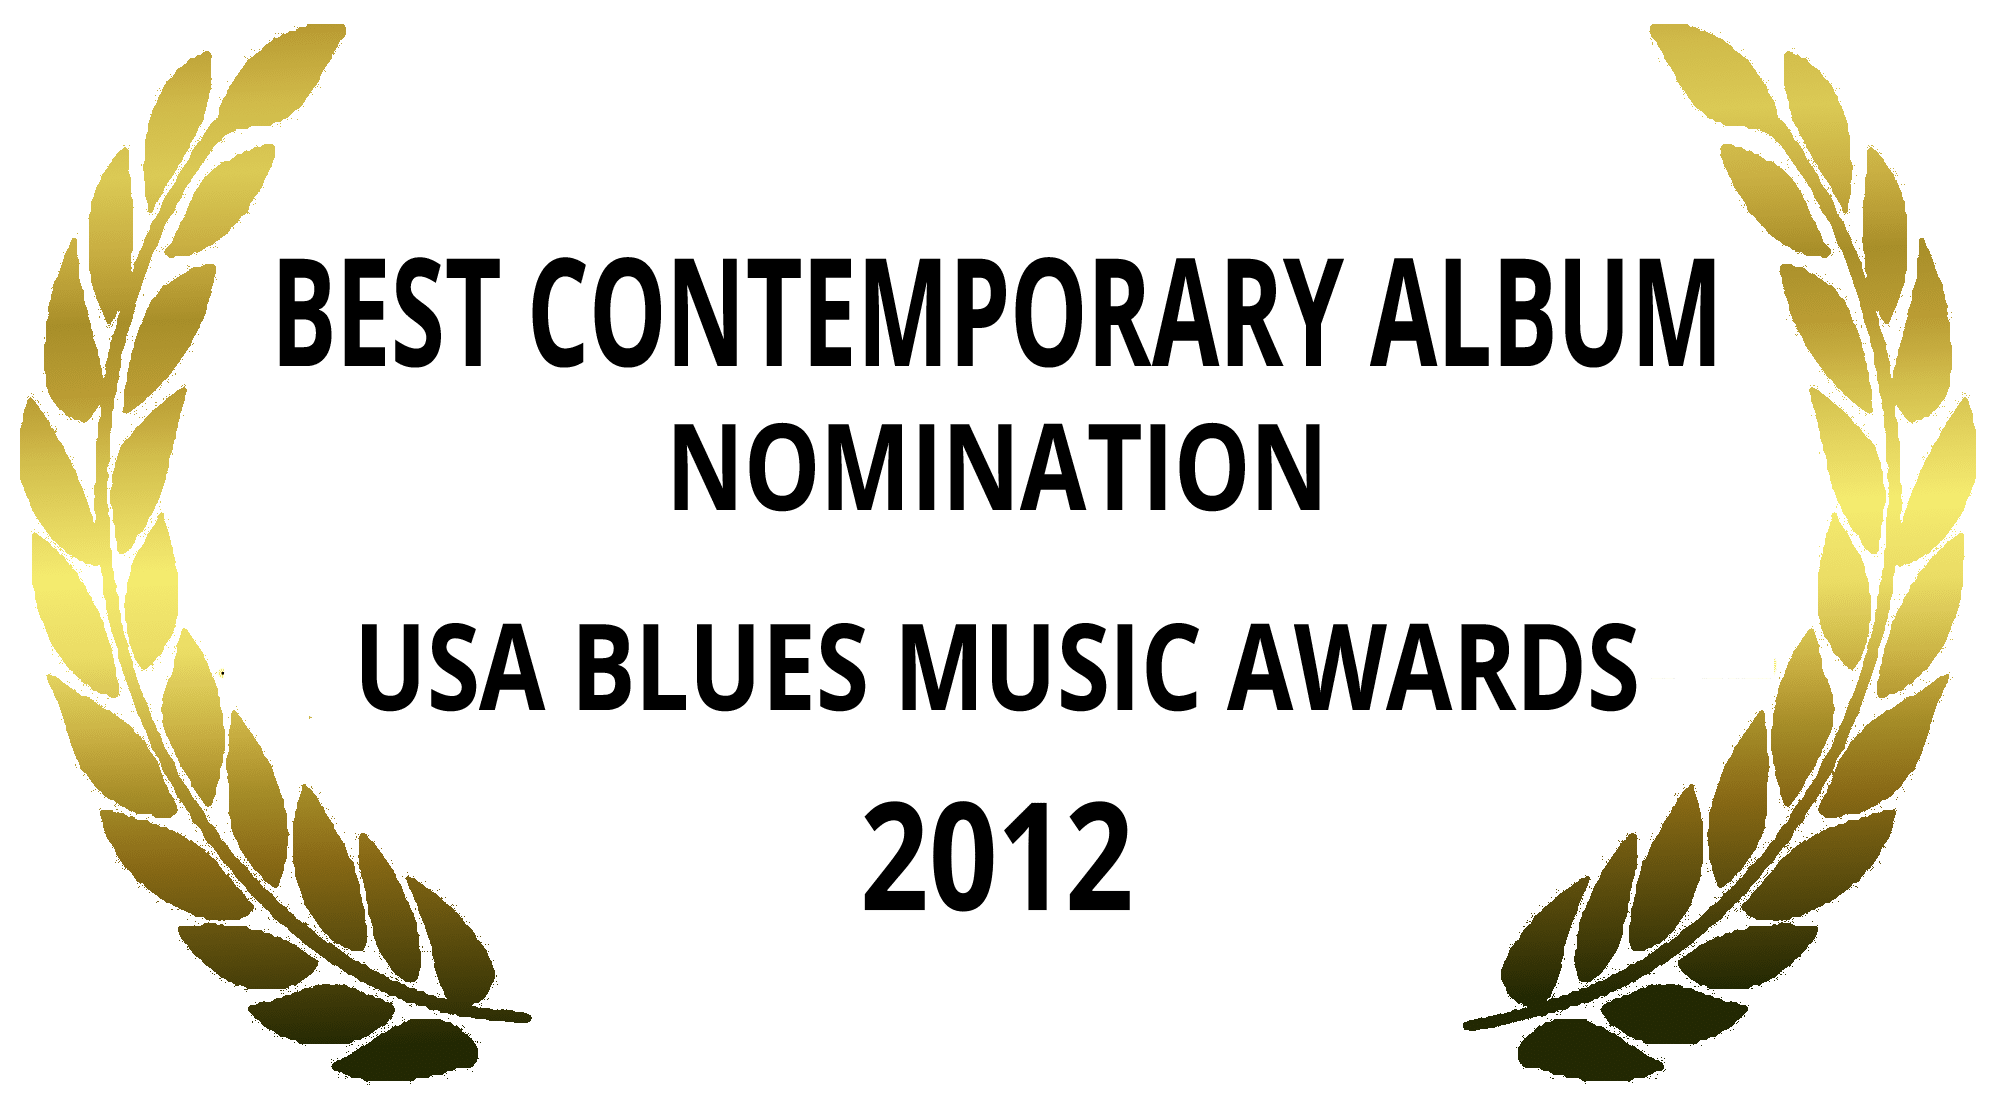 Best Contemporary Album Nominee 2012